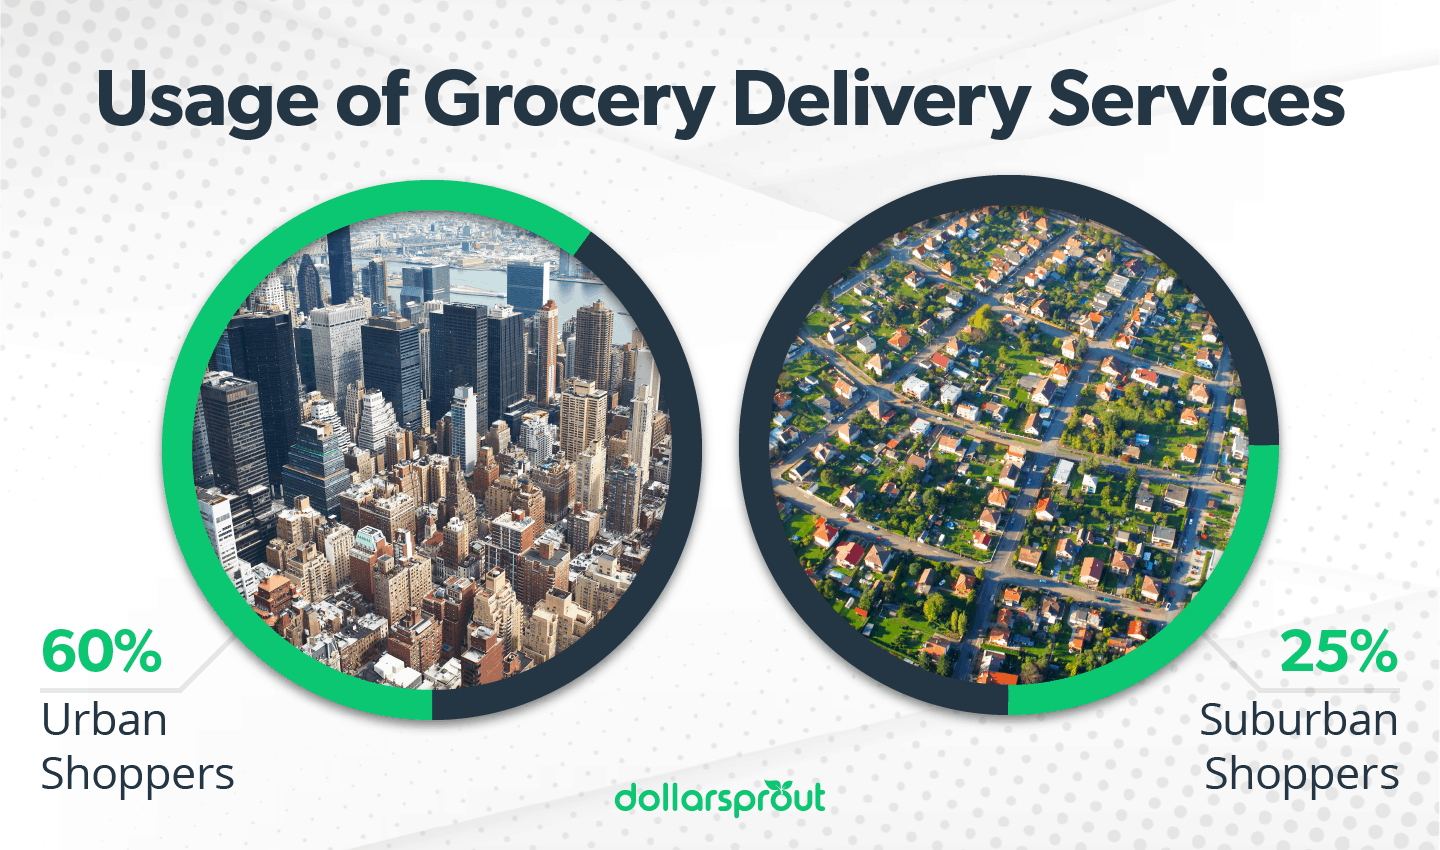 Usage of Grocery Delivery Services Urban vs Suburban